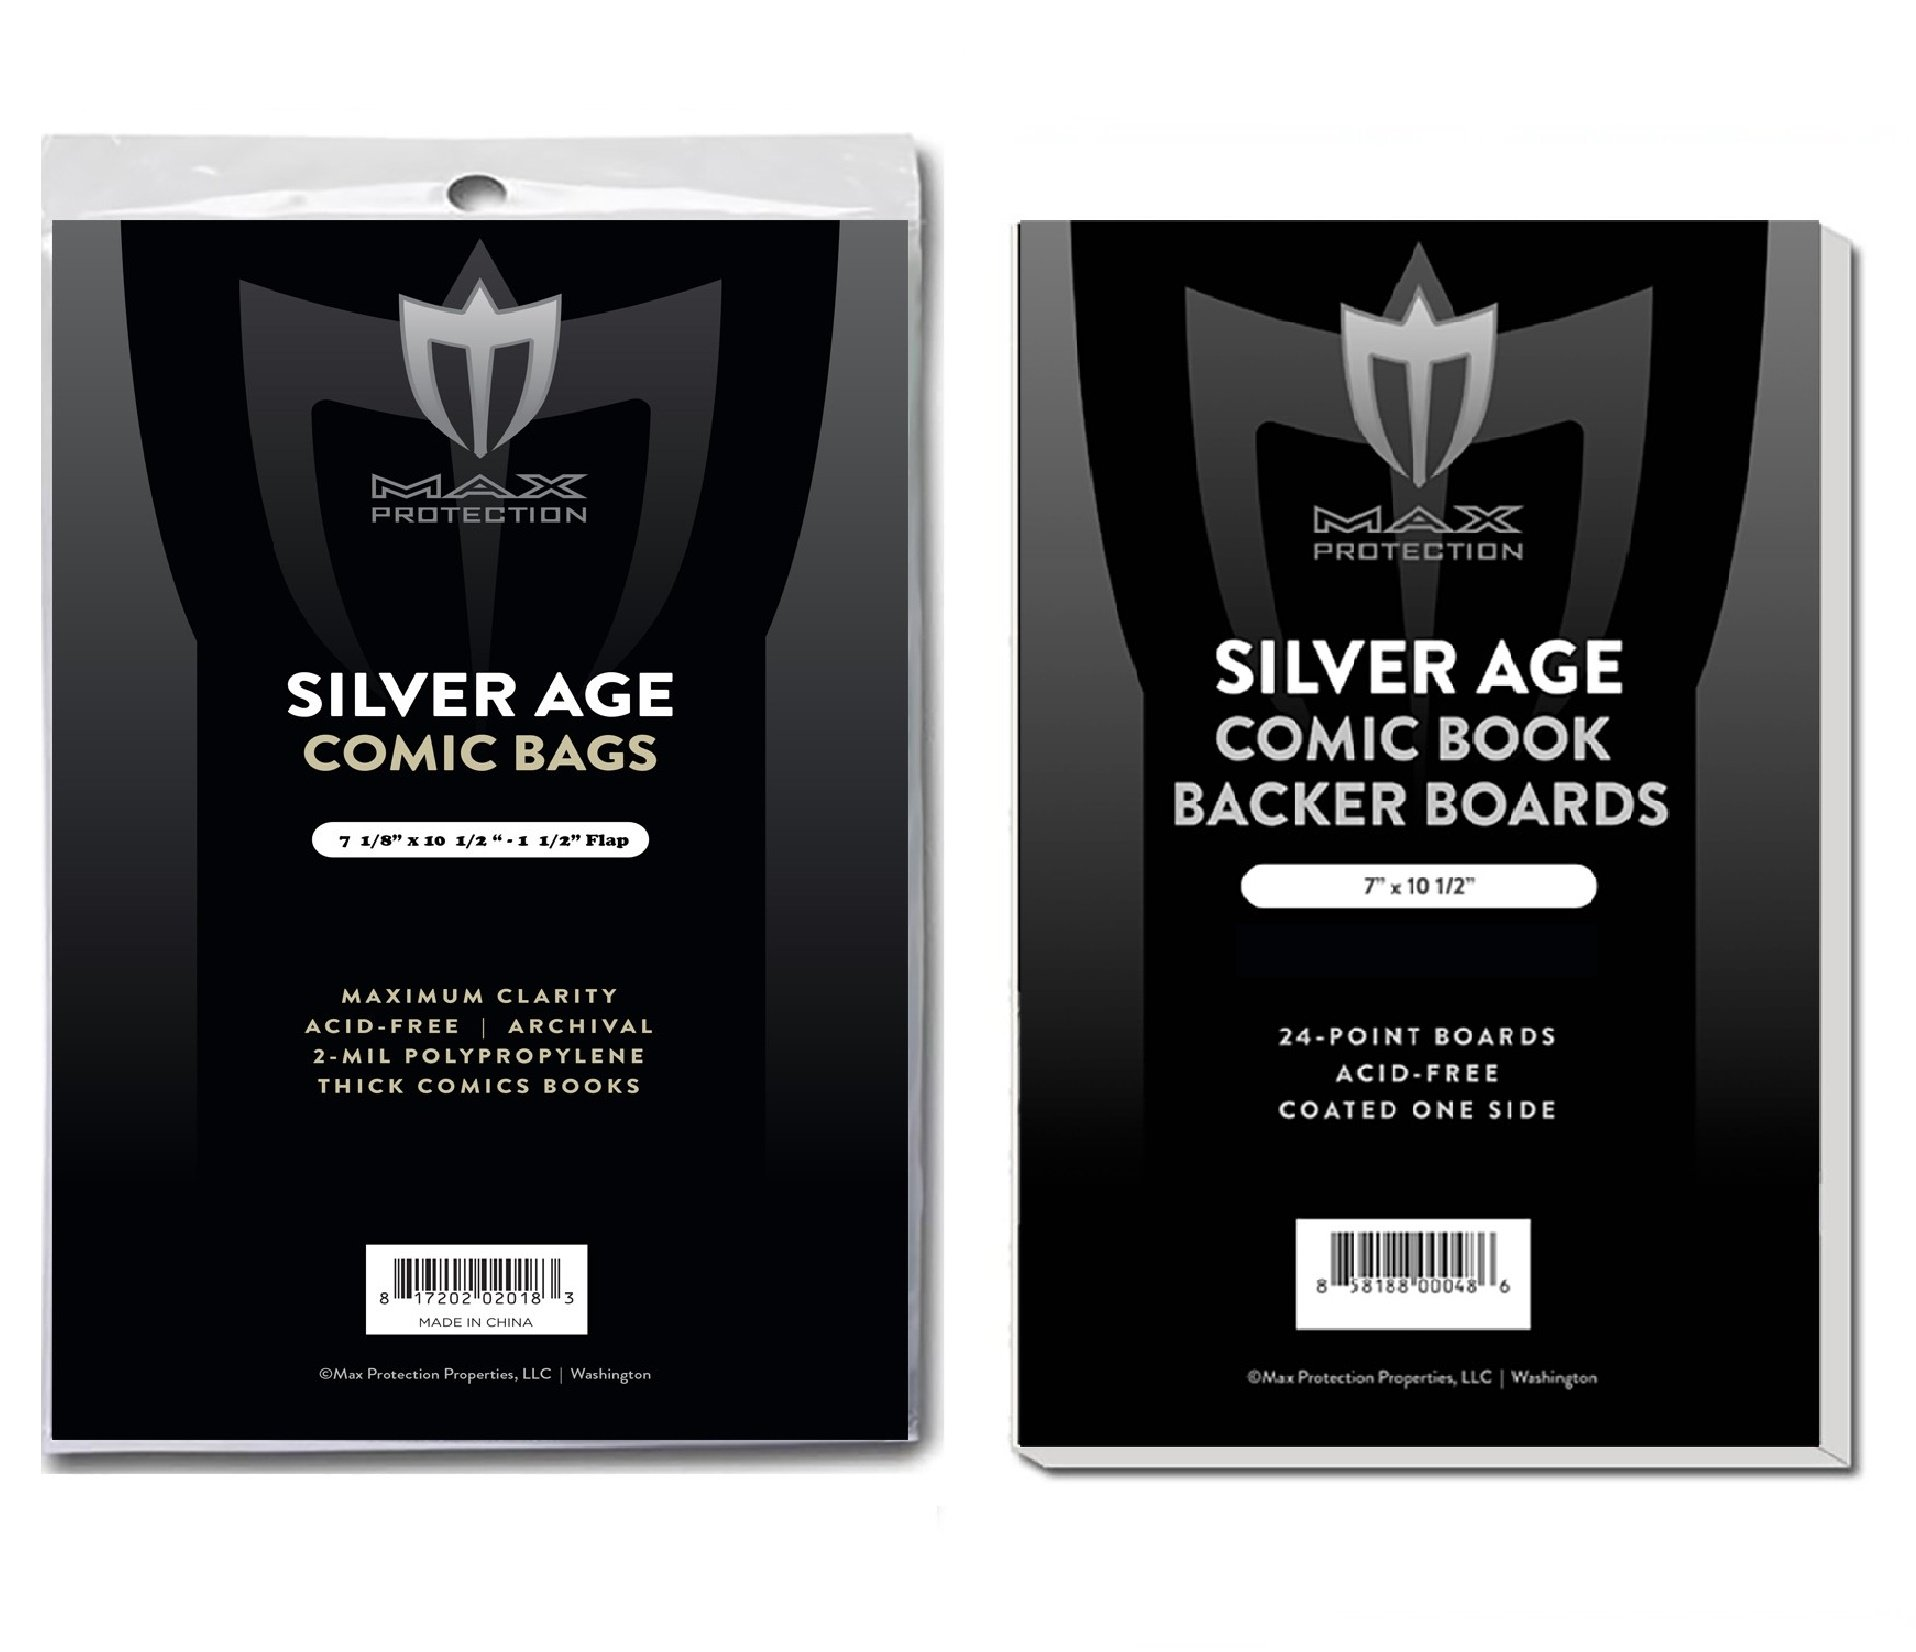 (1000) SILVER Size Ultra Clear Comic Book Bags and Boards - by Max Pro (Qty= 1000 Bags and 1000 Boards) by Max Protection